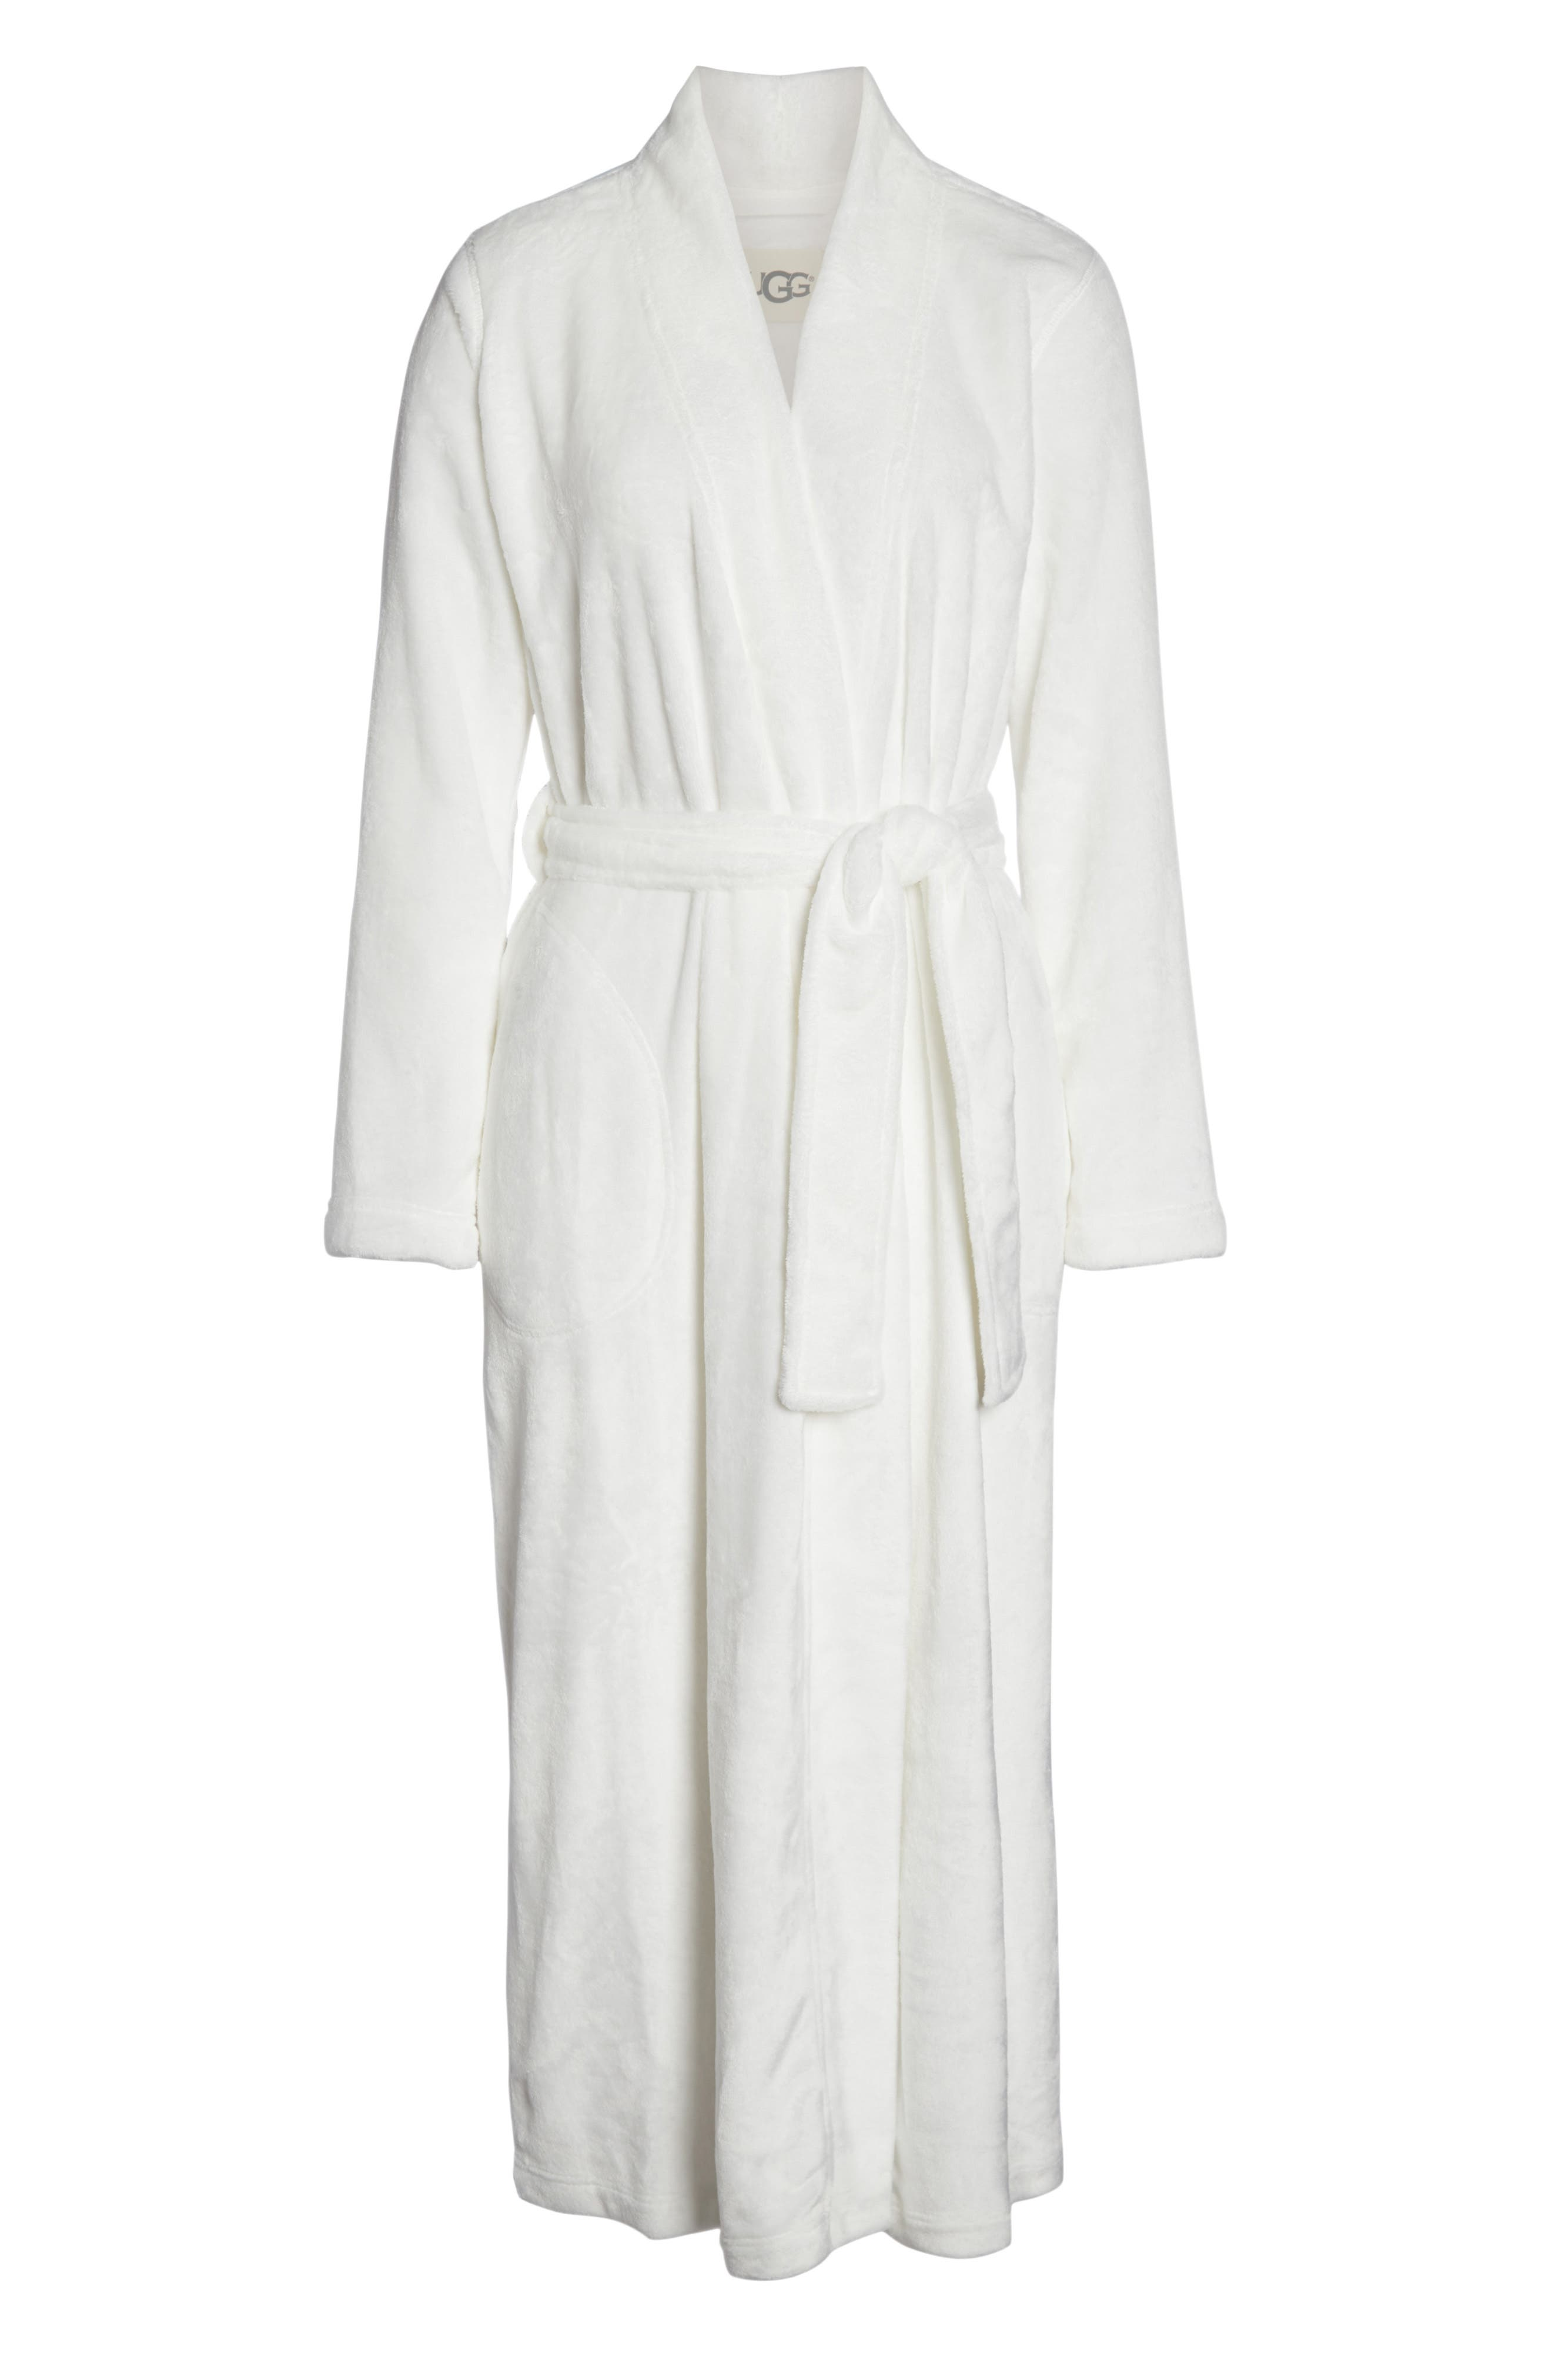 UGG<SUP>®</SUP>, Marlow Double-Face Fleece Robe, Alternate thumbnail 6, color, SEAGULL